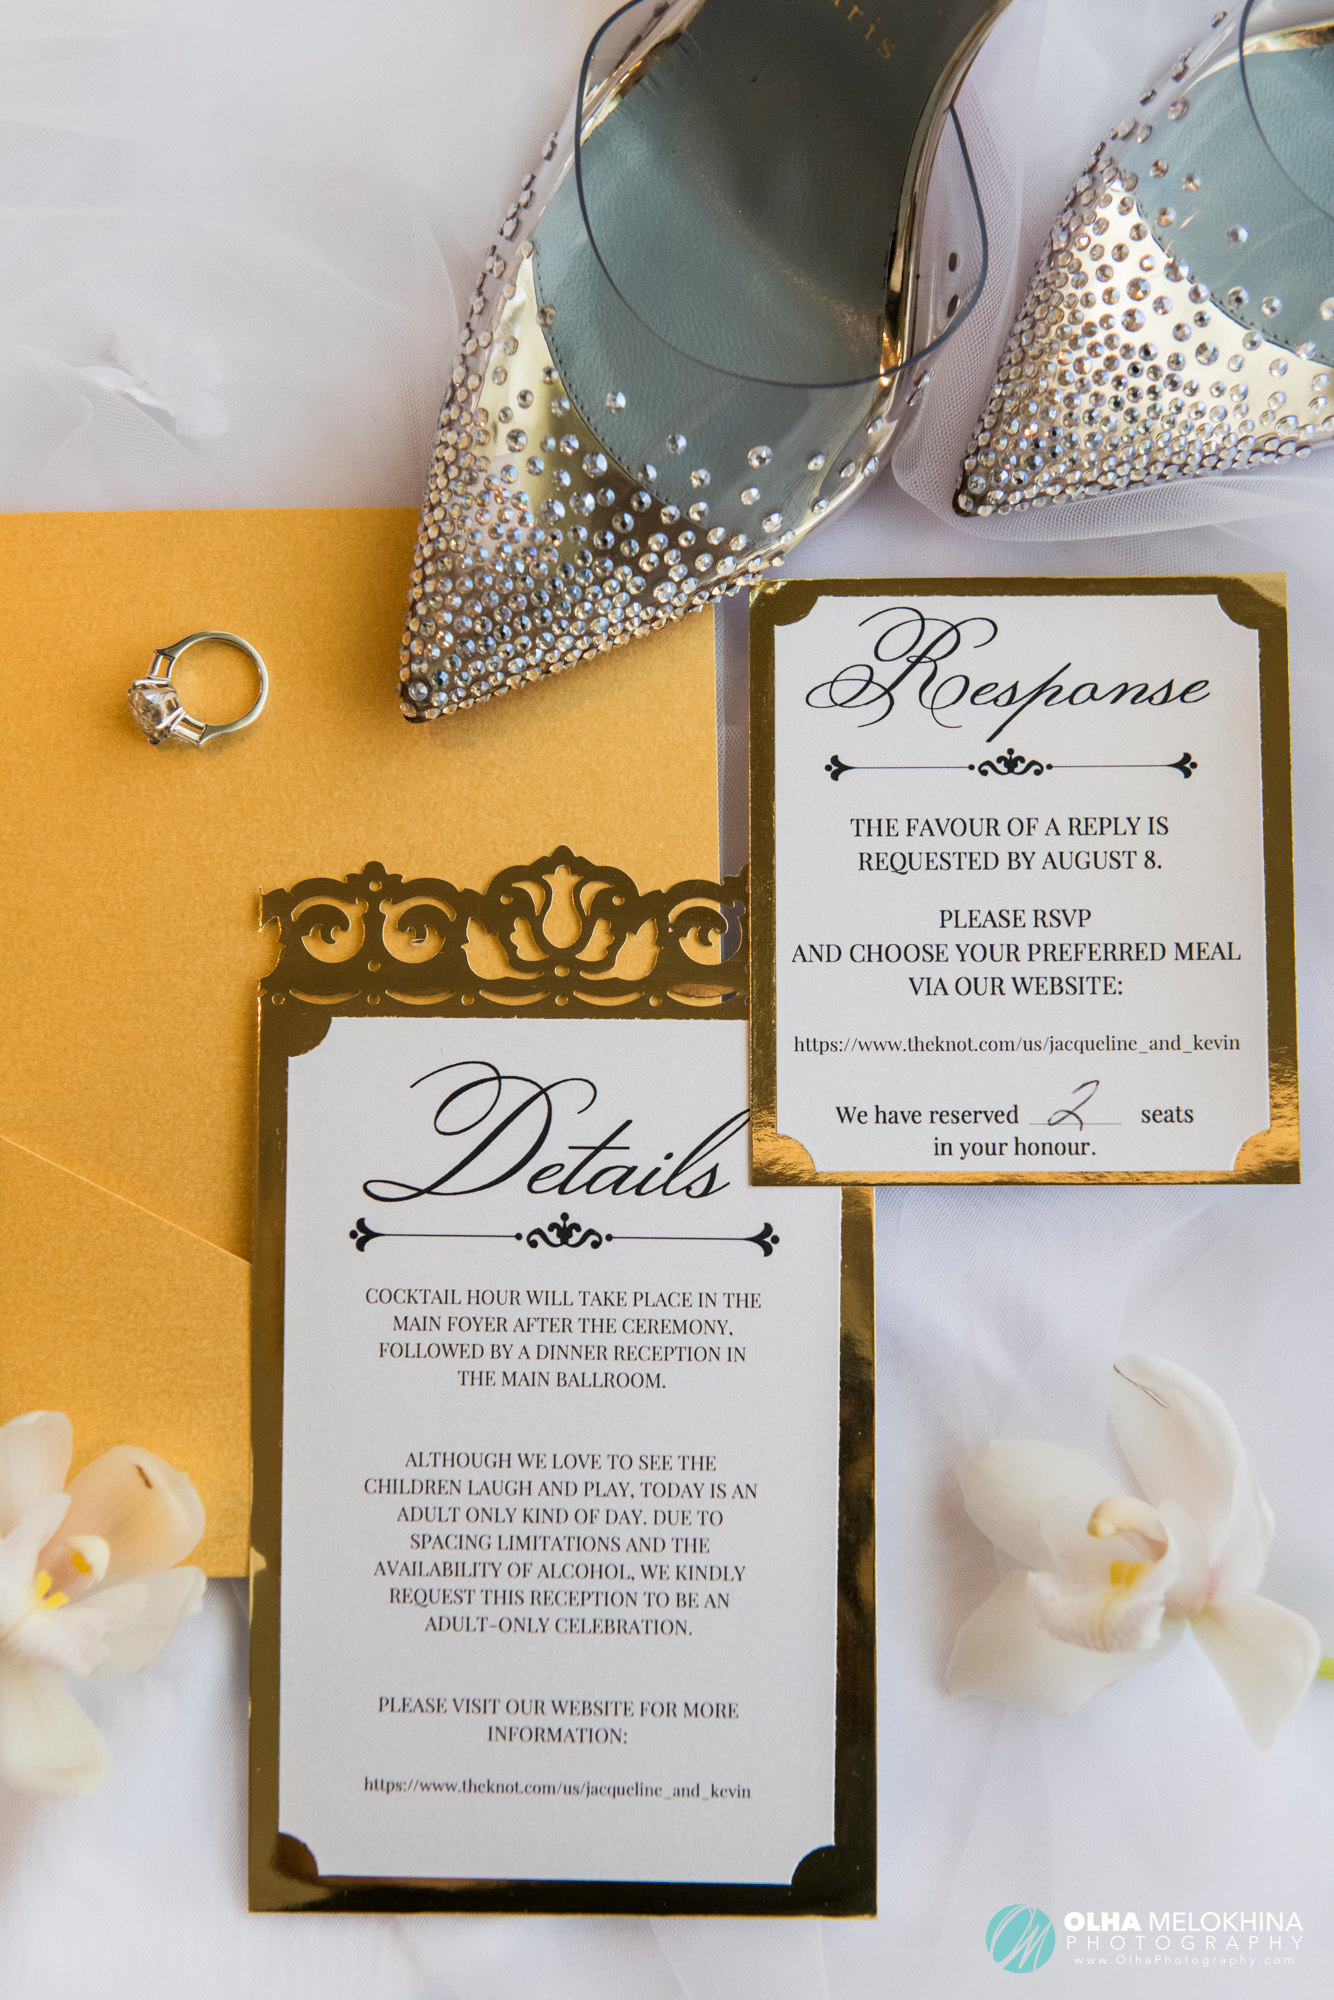 Bride's details are always so pleasing to the eye.